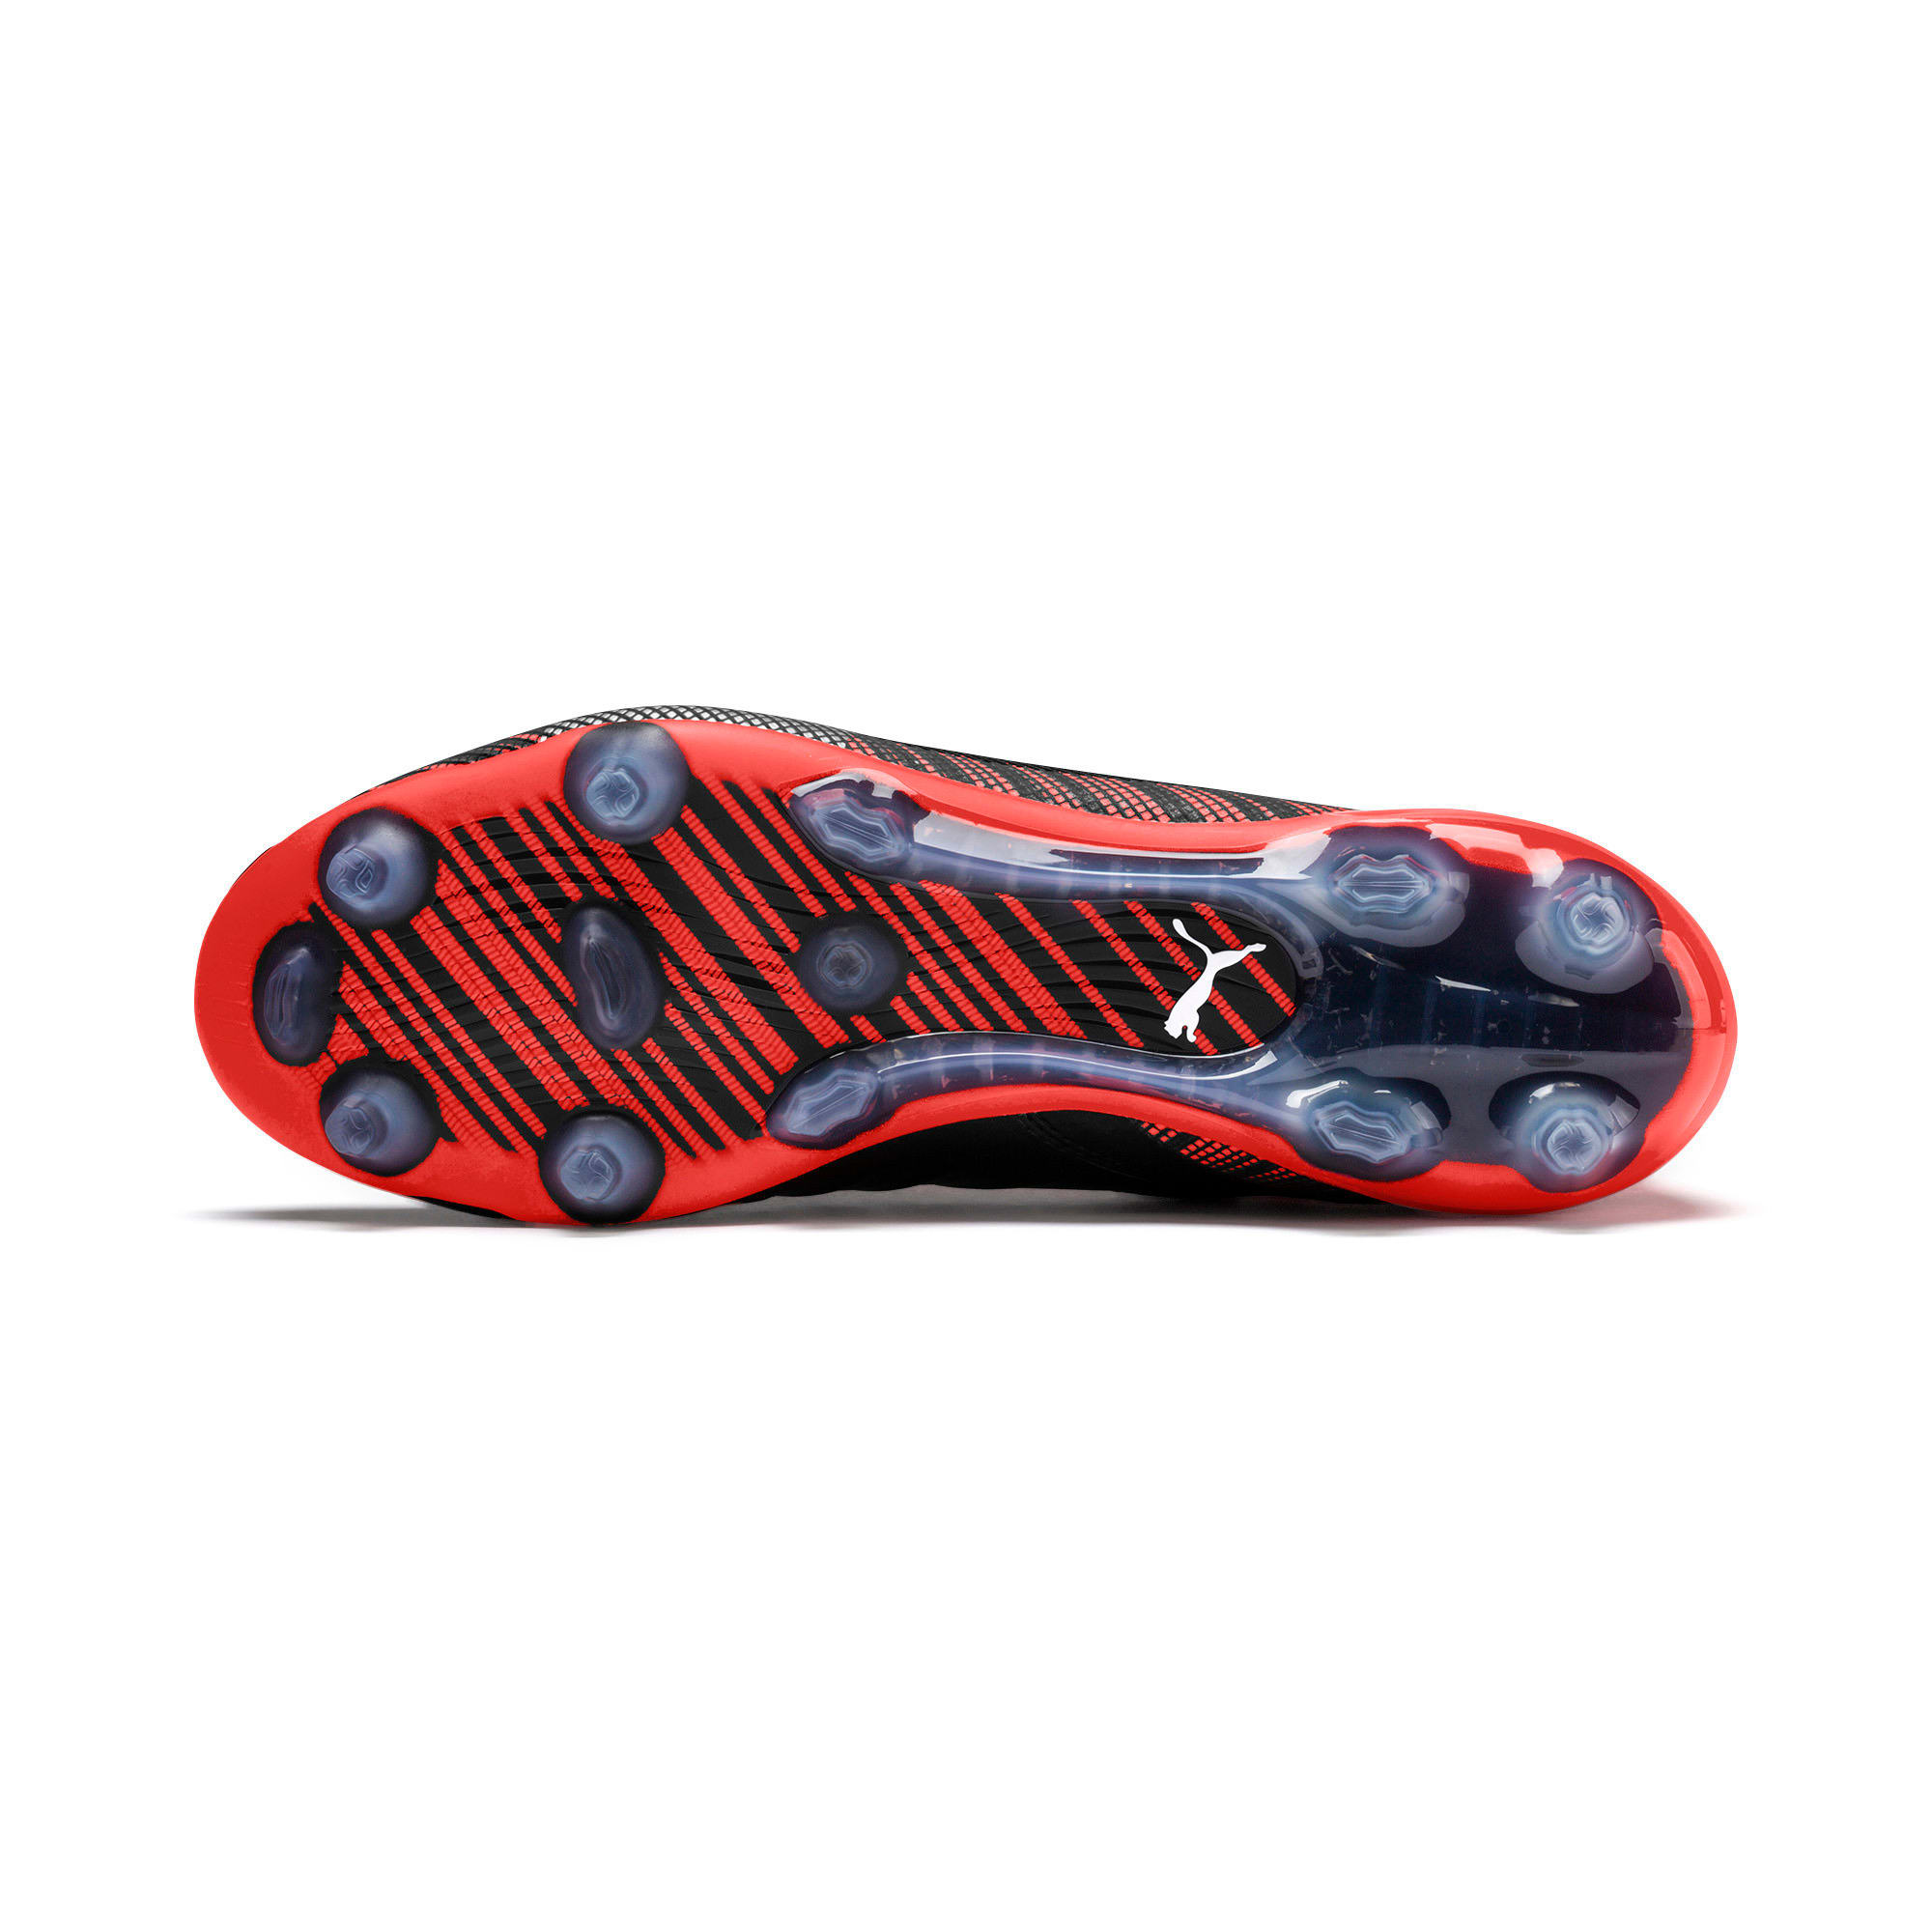 Thumbnail 6 of PUMA ONE 5.1 evoKNIT FG/AG Men's Football Boots, Black-Nrgy Red-Aged Silver, medium-IND